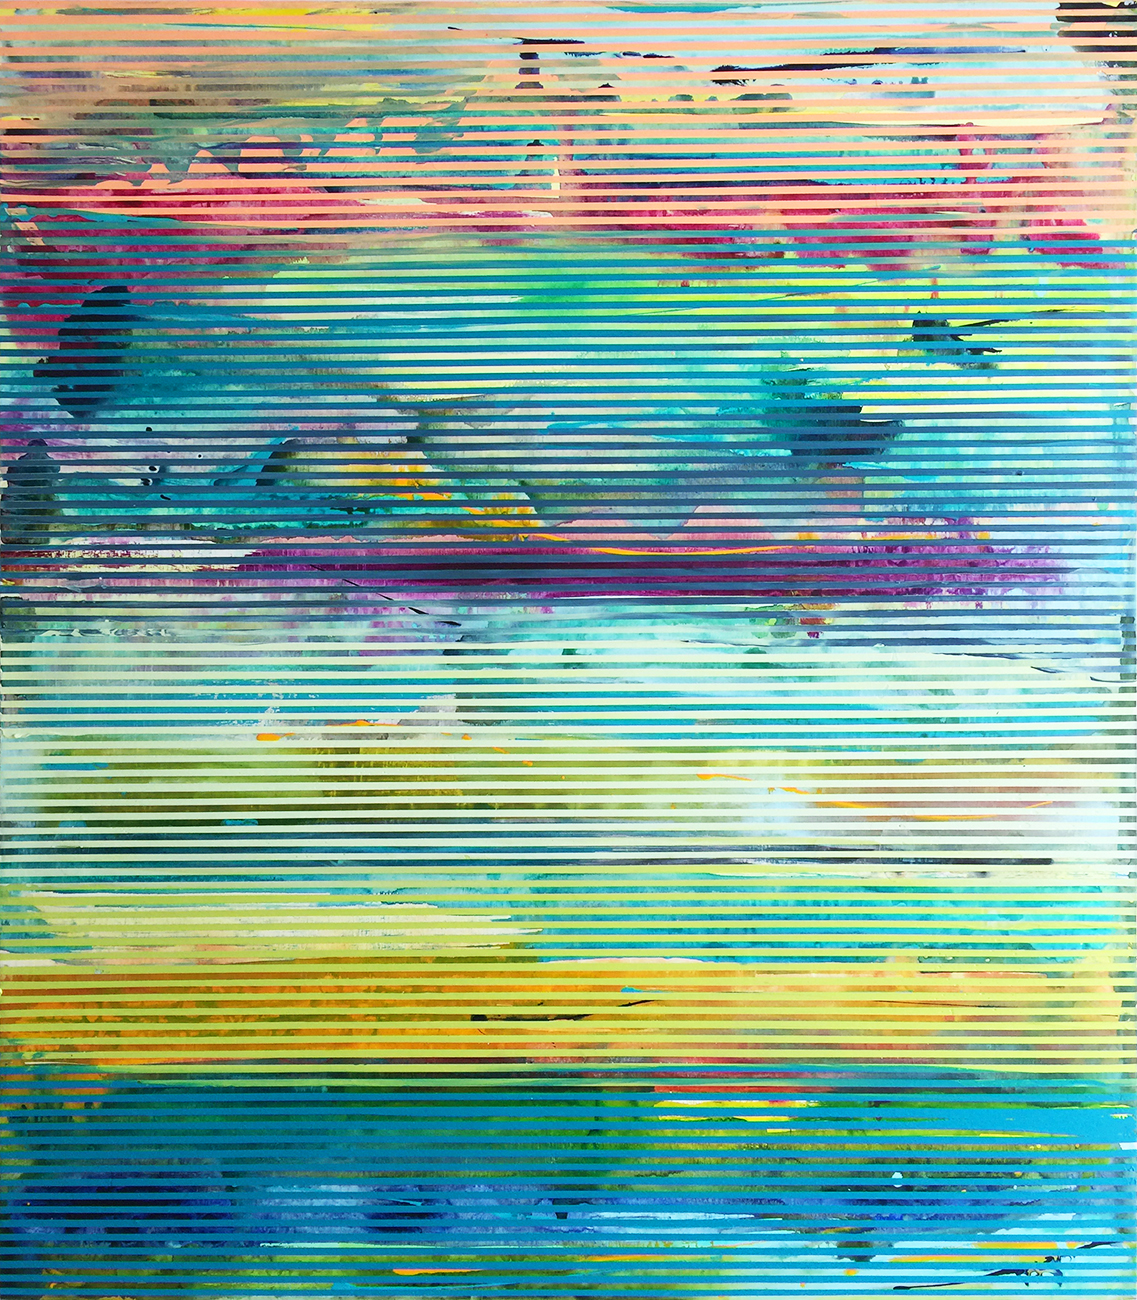 Weaving Landscape No.46_42 x 48 inches_2017